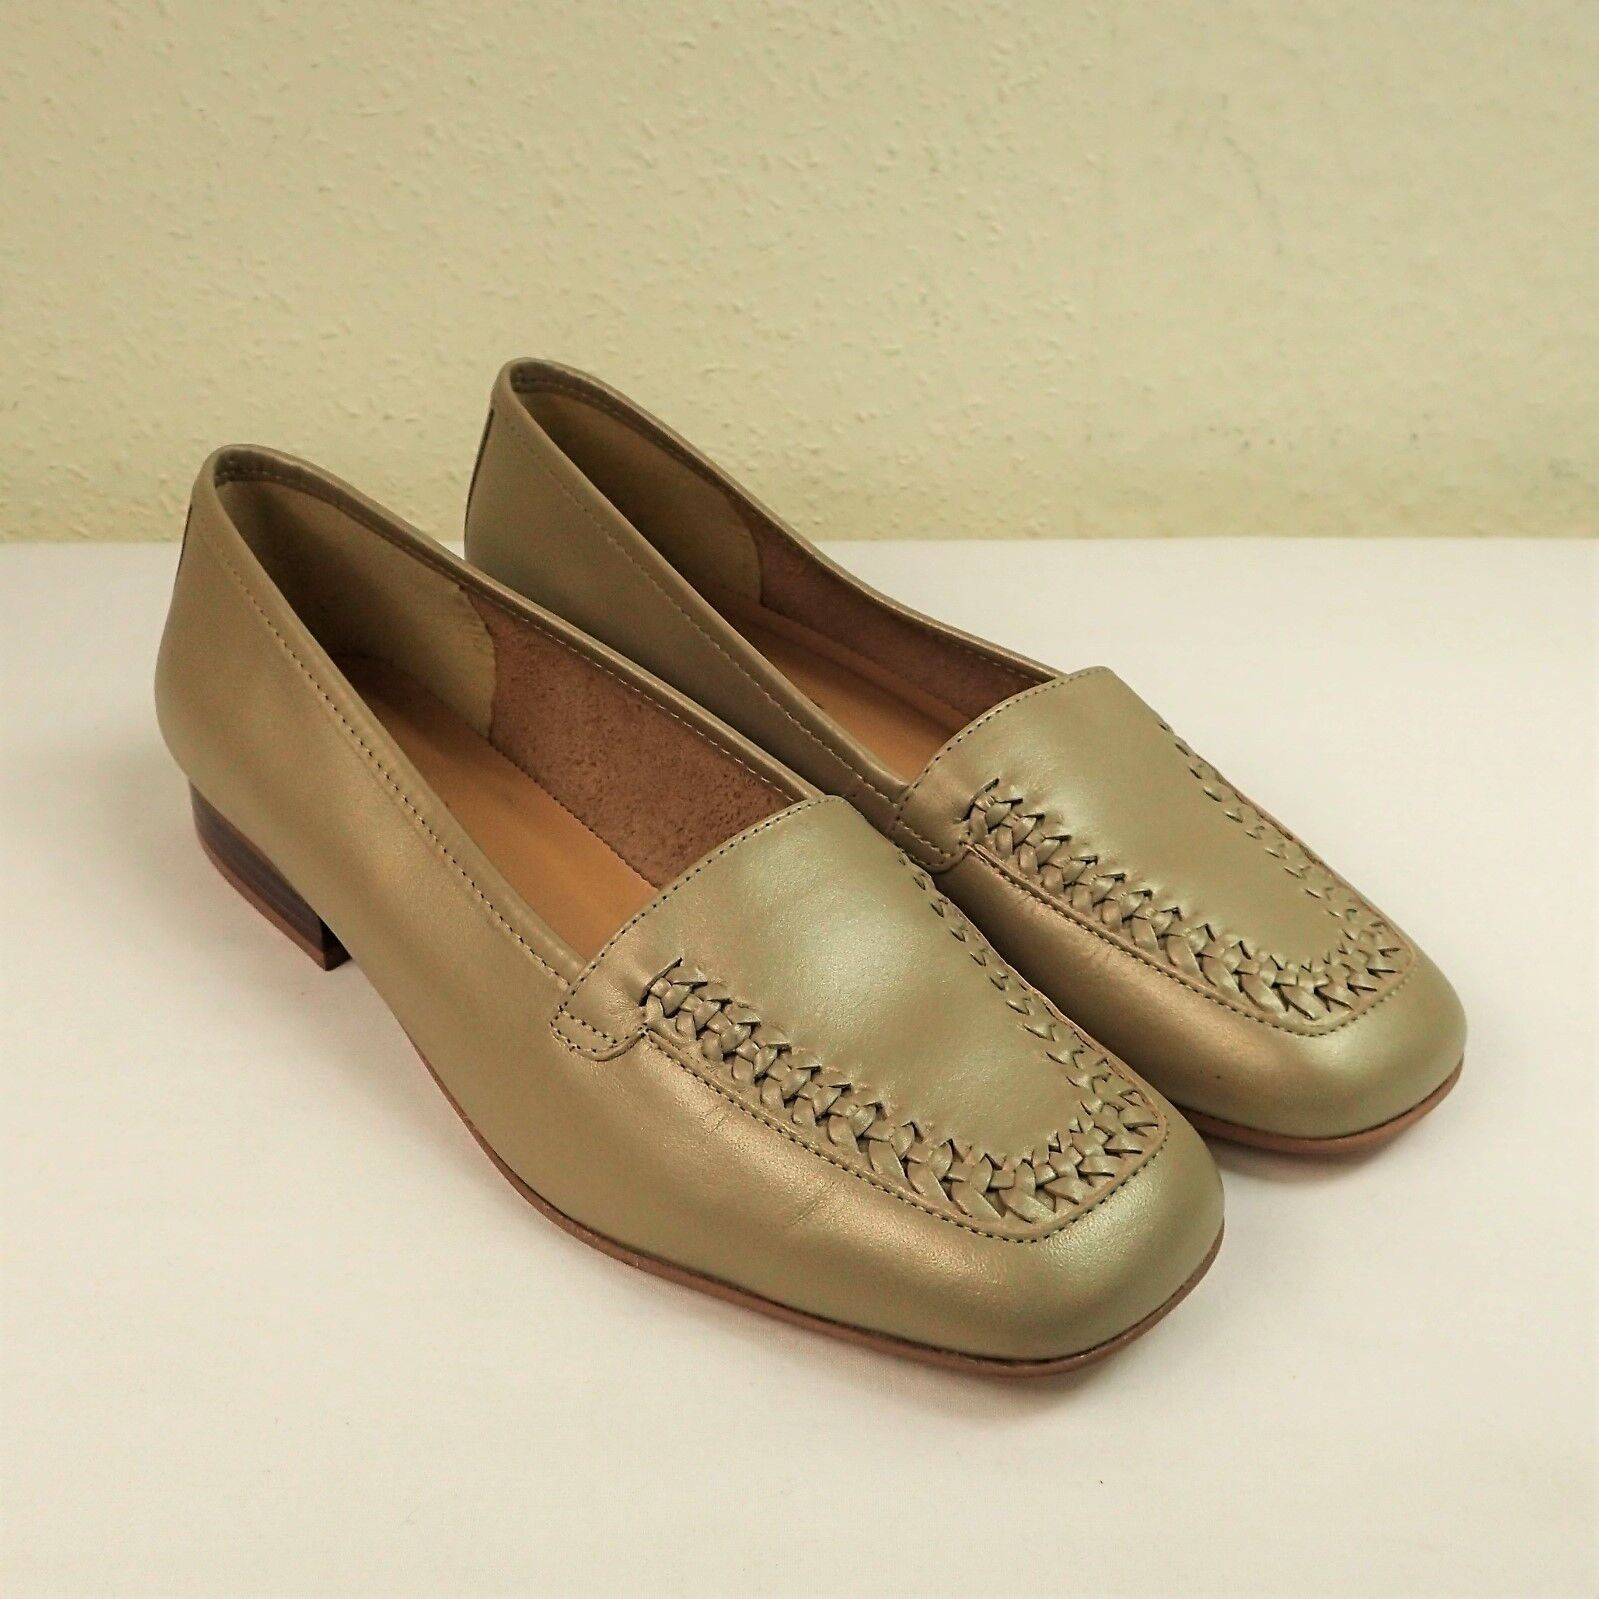 Clarks Hispaniol Sz UK 6 EU 39.5 Leder Flat Slip On Loafers Schuhe Metallic Gold